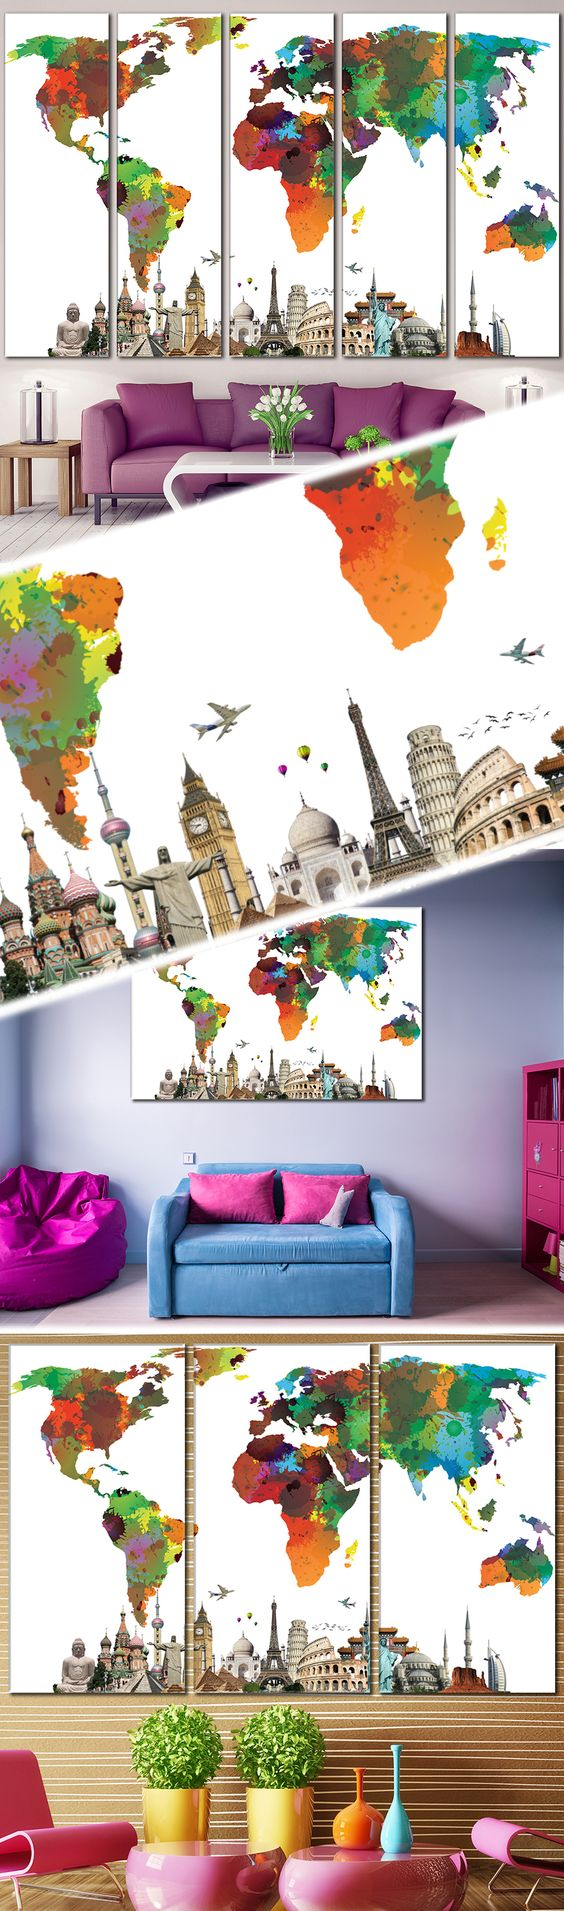 World map 854 office walls wall decorations and decoration creative world map canvas prints wall art for large home or office wall decoration sale gumiabroncs Gallery